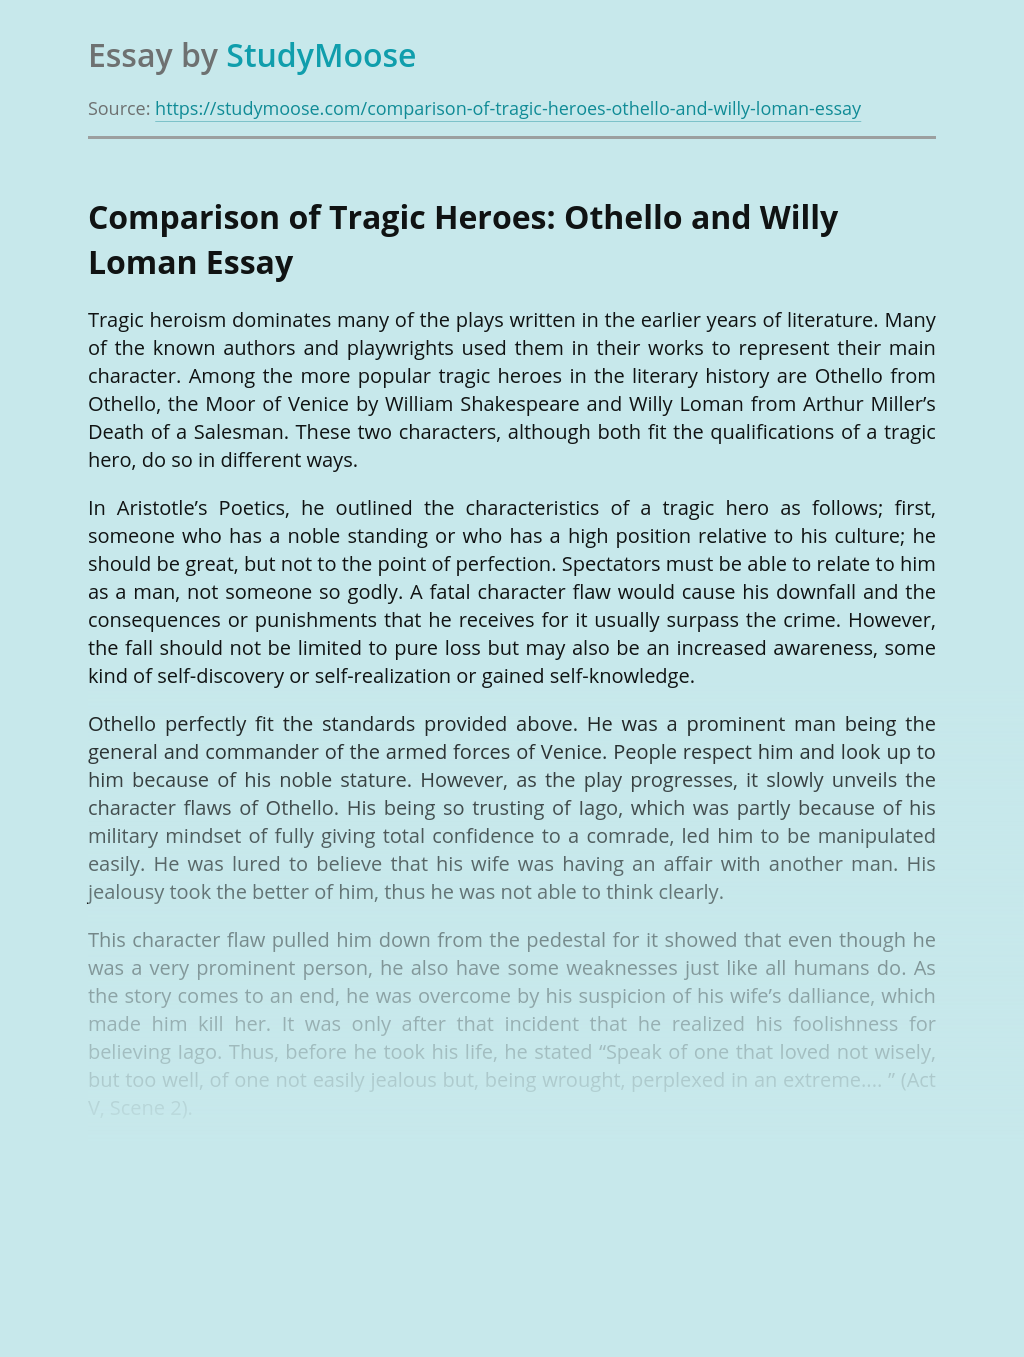 Comparison of Tragic Heroes: Othello and Willy Loman